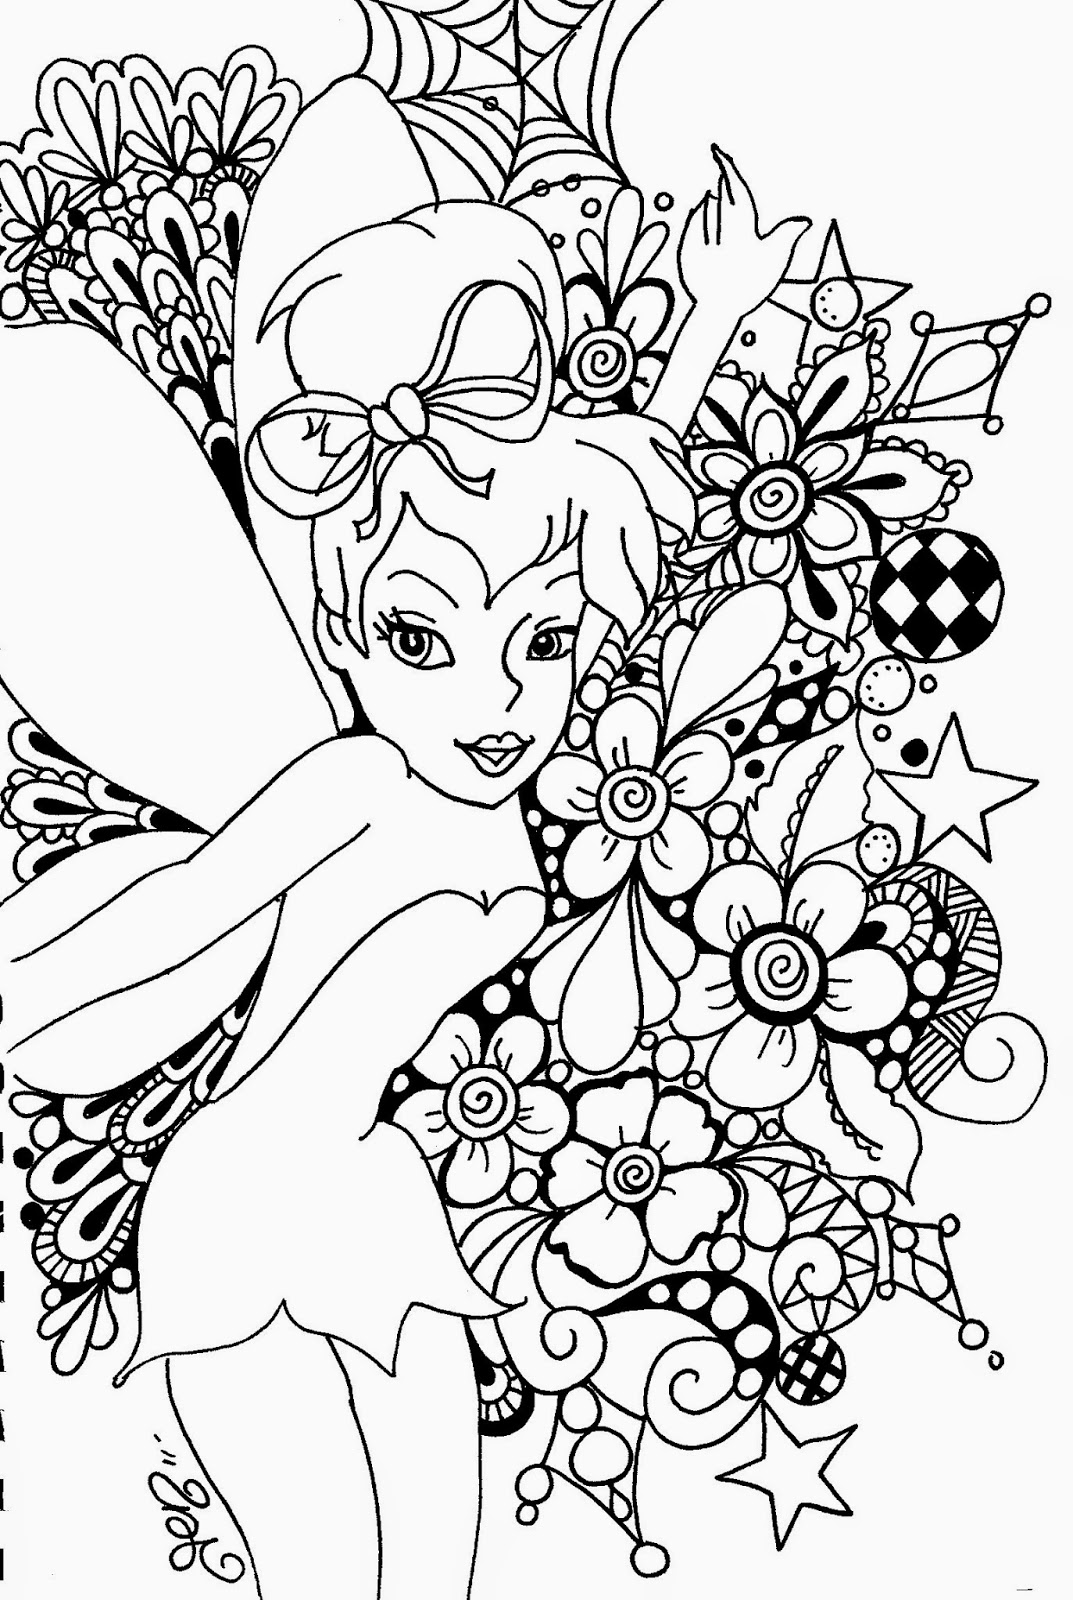 tinkerbell coloring coloring pages tinkerbell coloring pages and clip art coloring tinkerbell 1 1